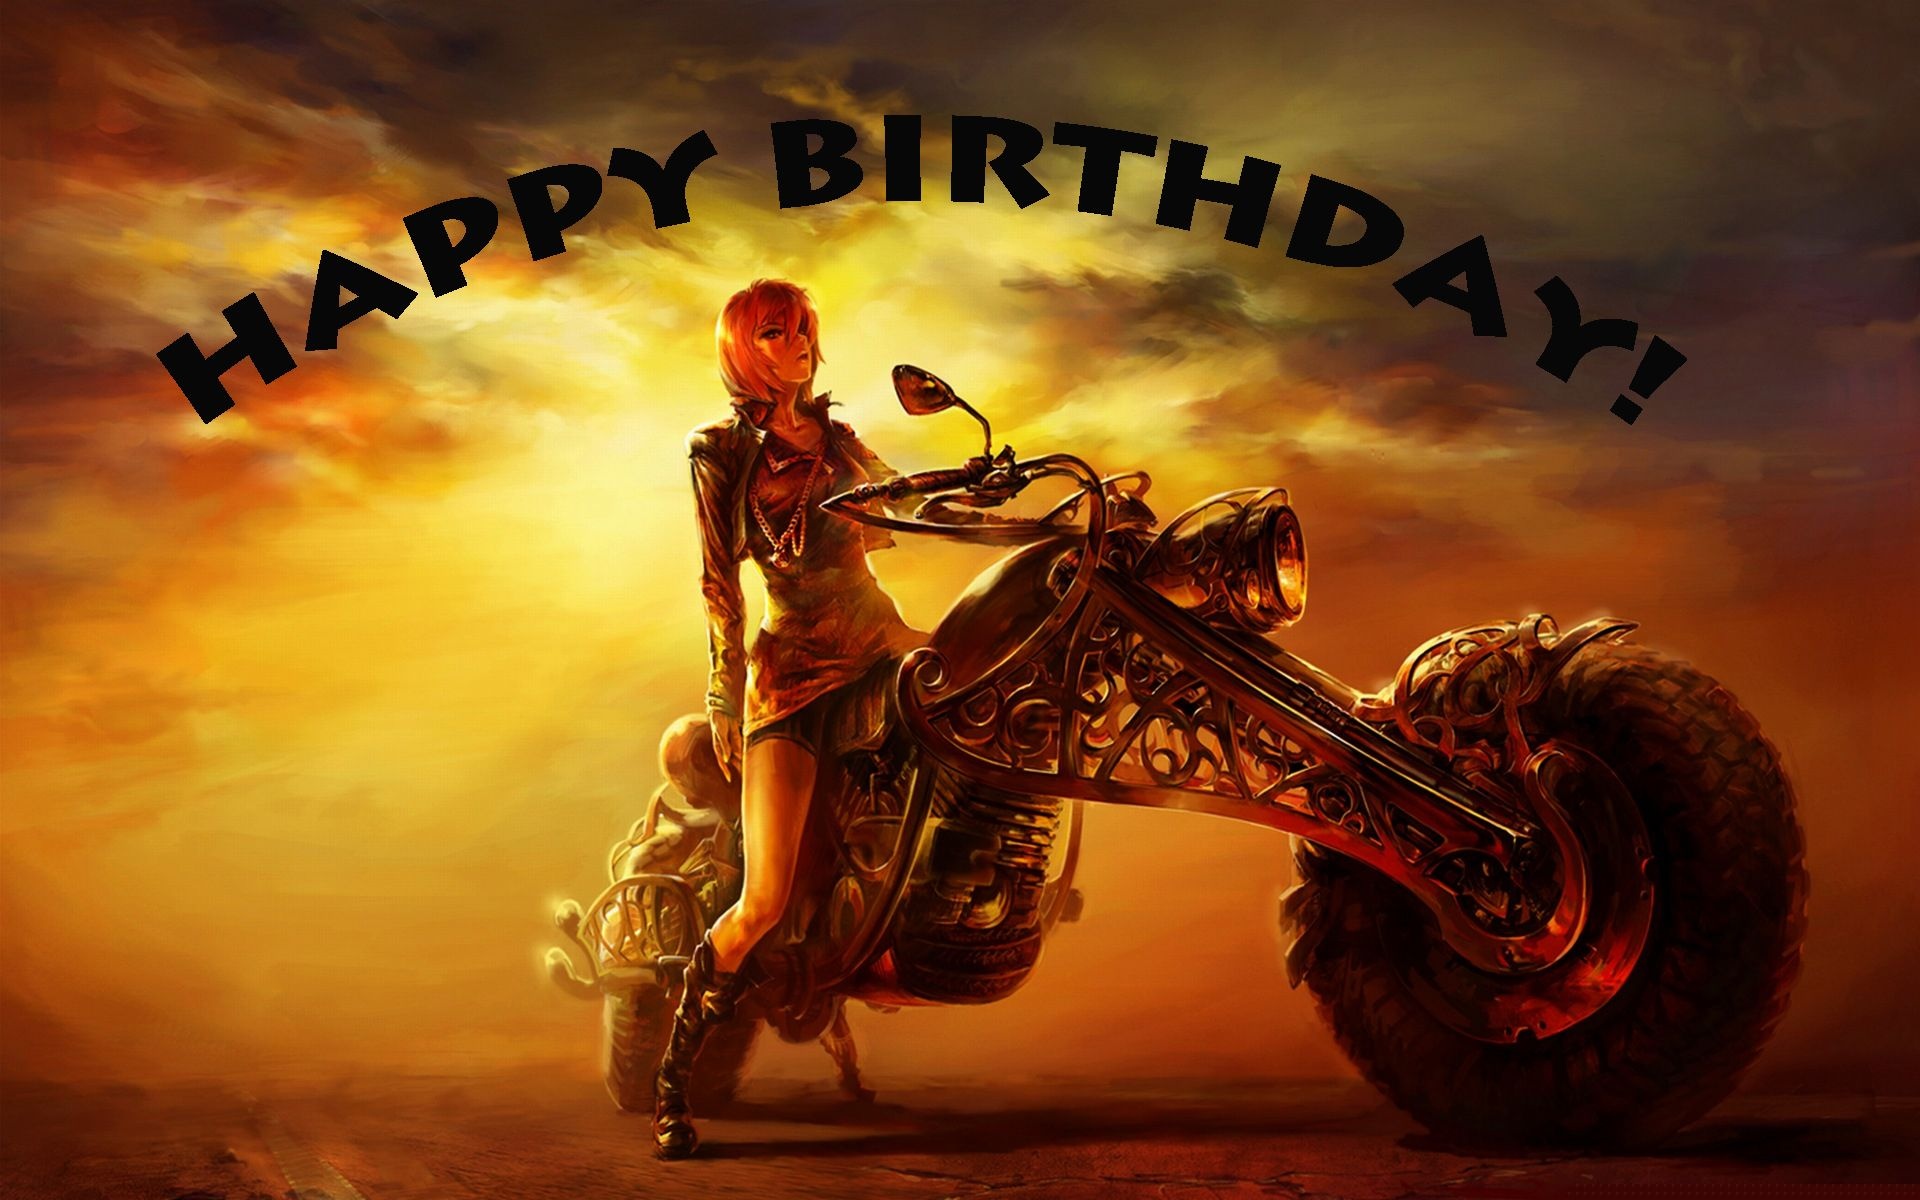 Happy Birthday Biker chick | motorcycles | Pinterest | Biker chick ...